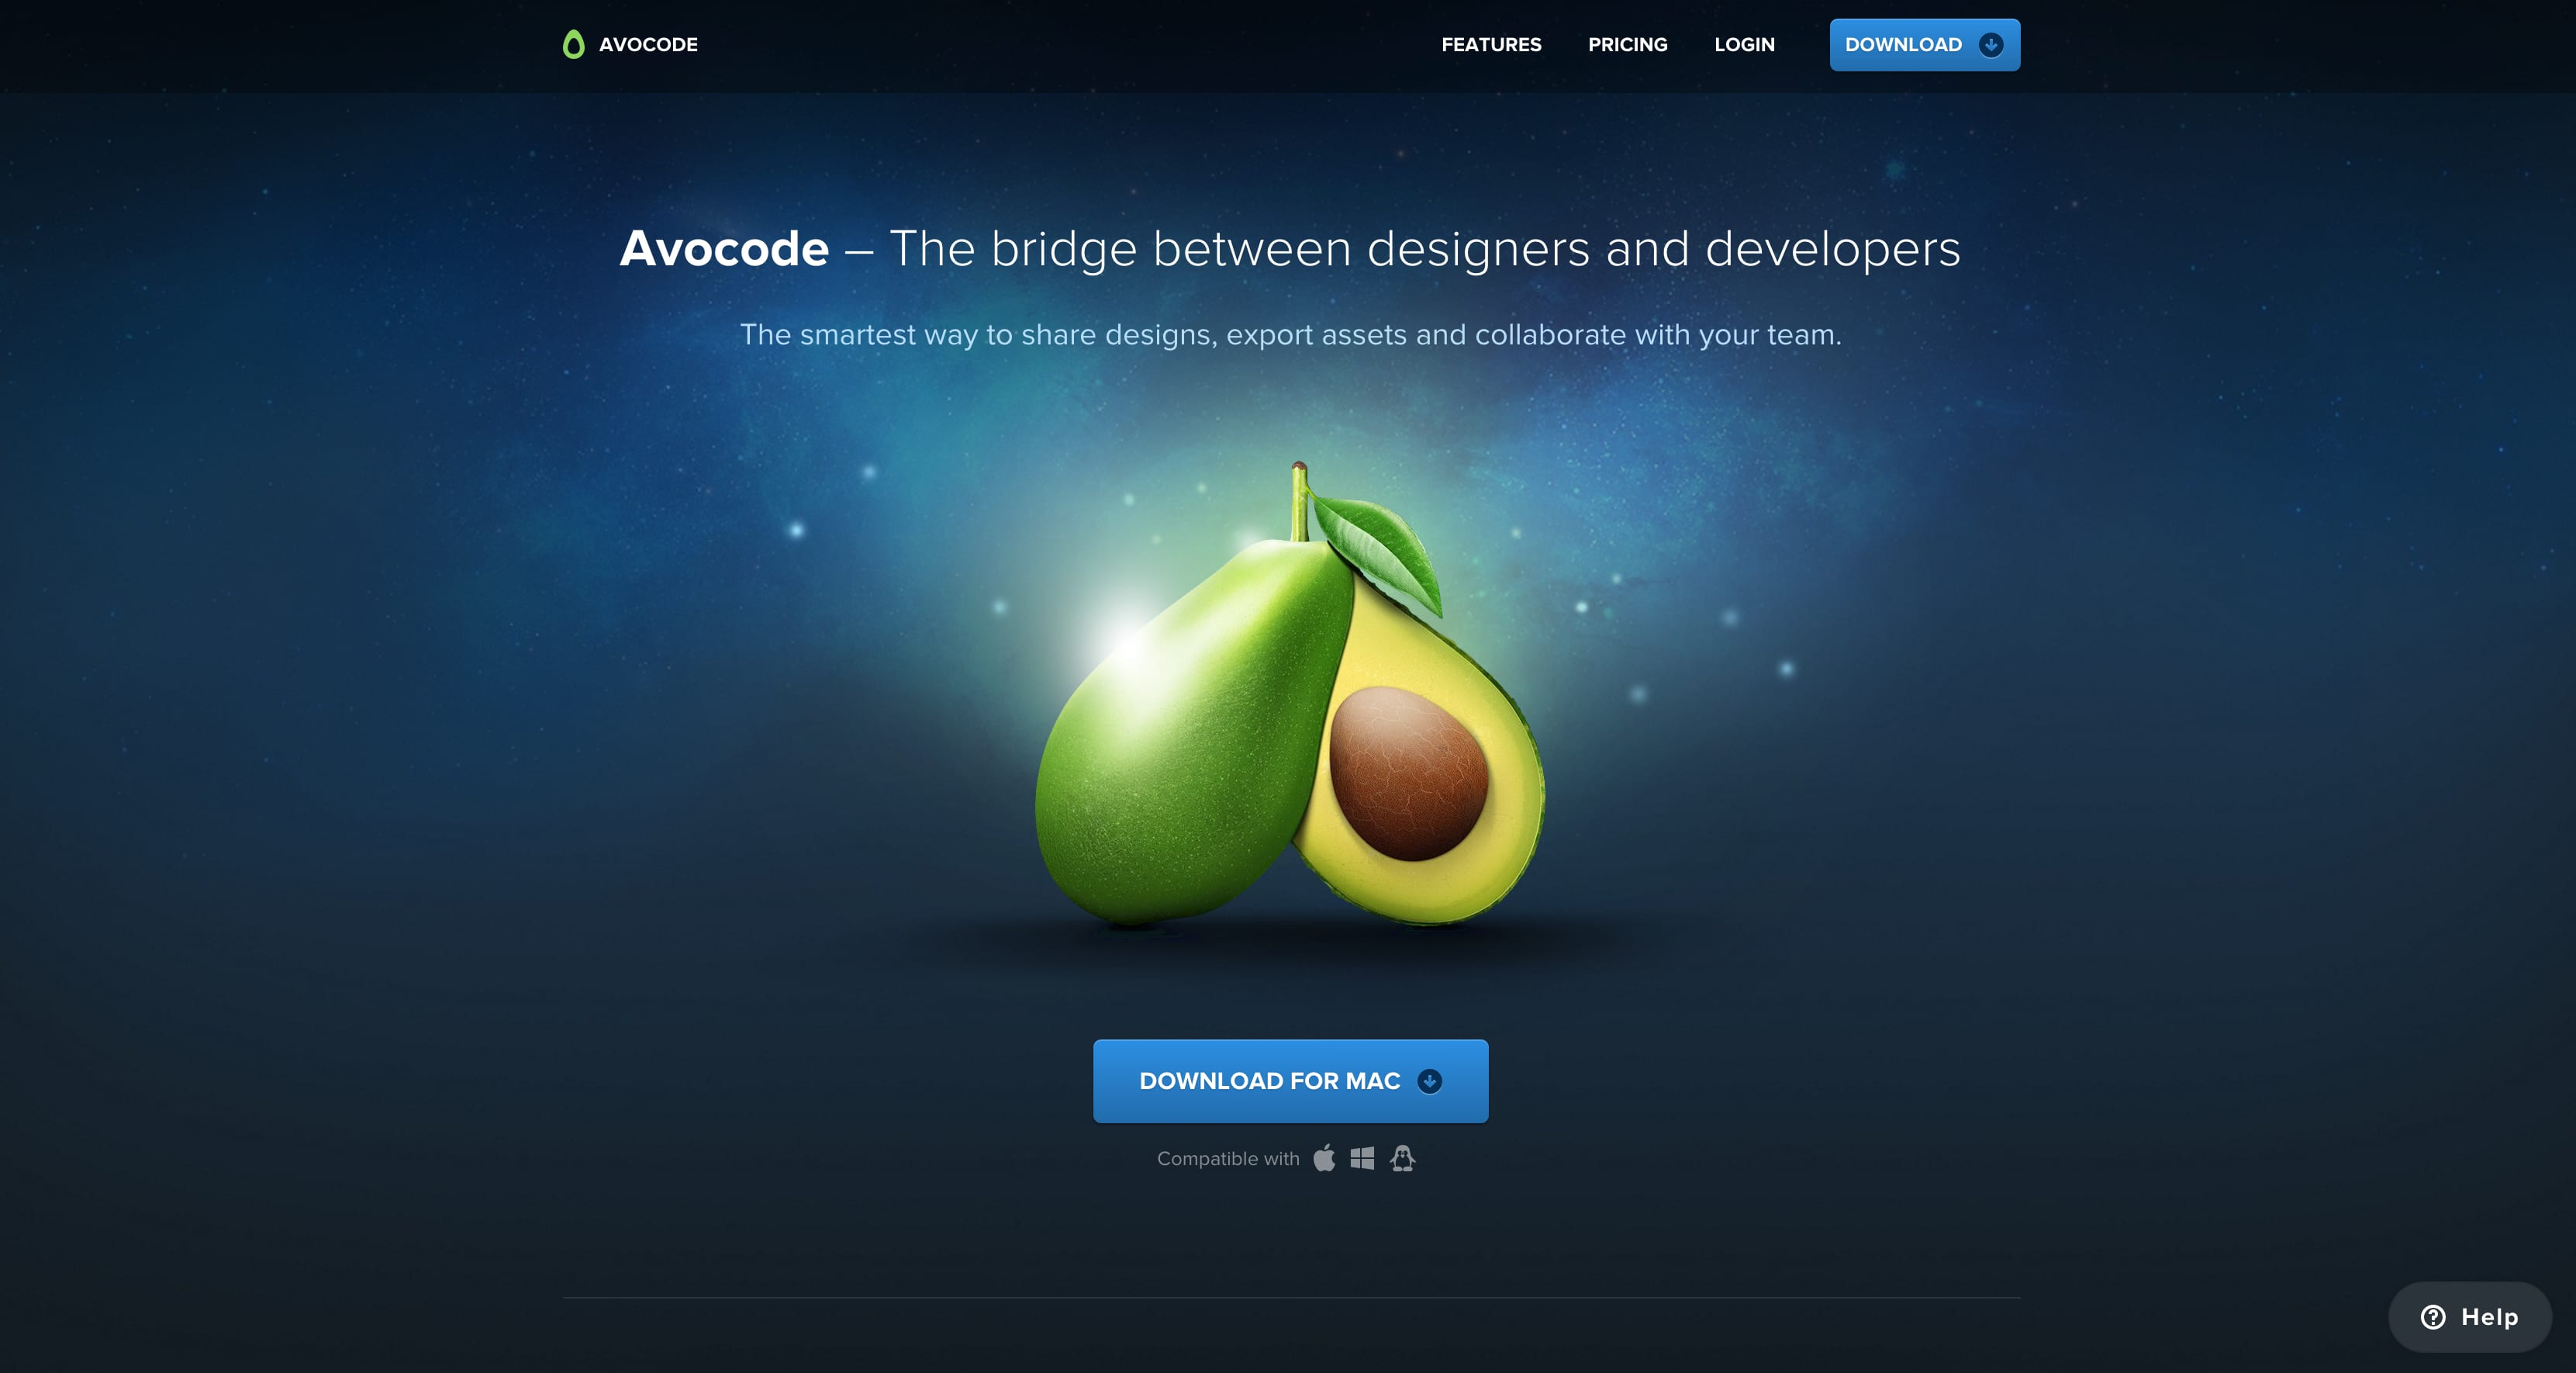 Avocode web design tools